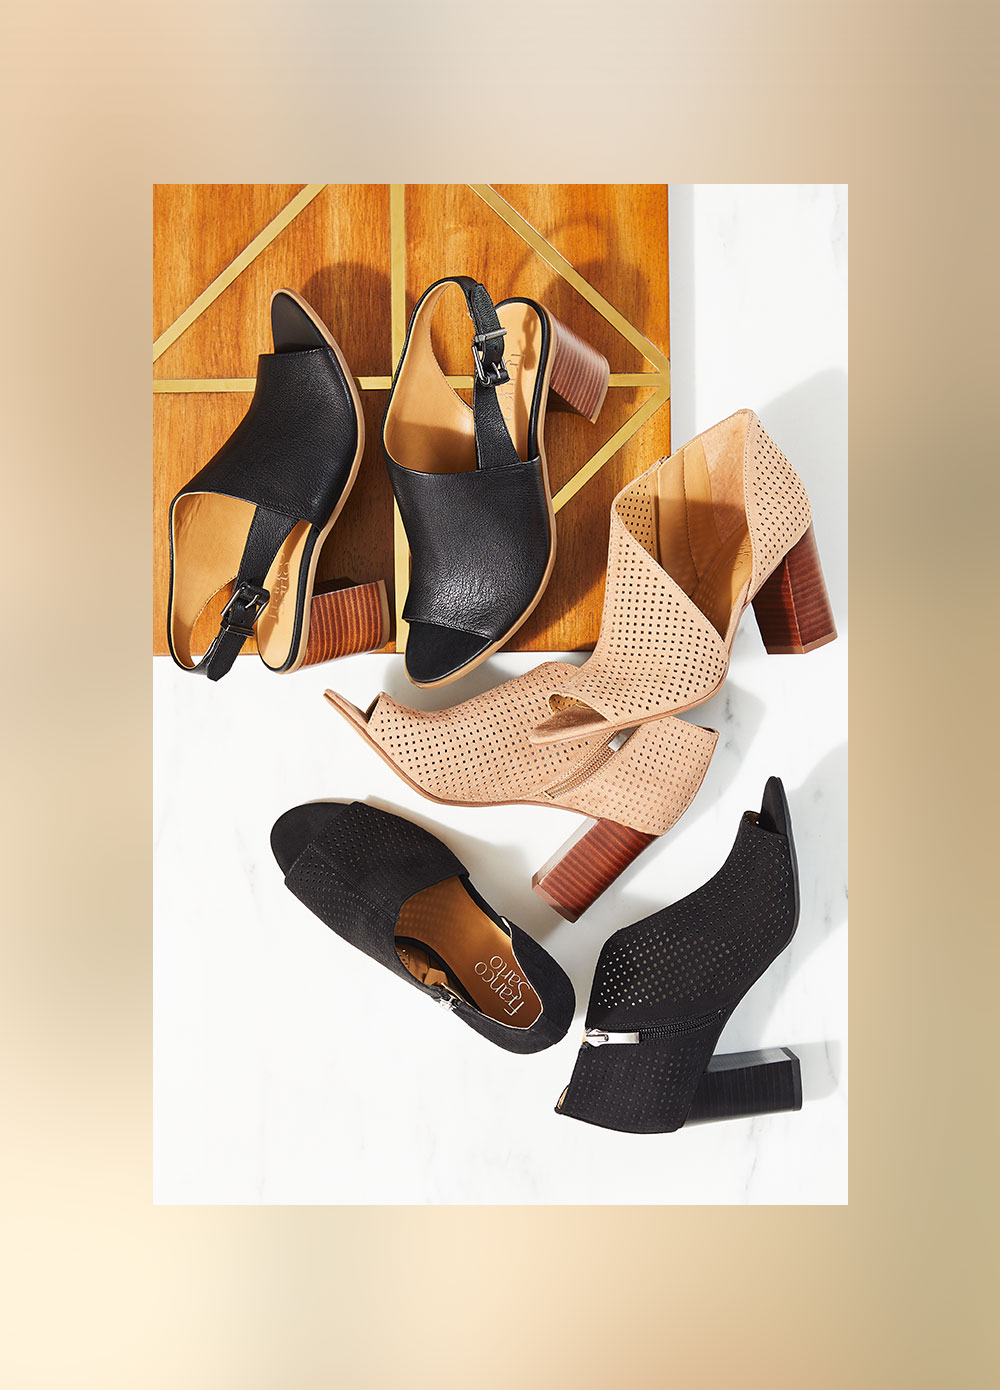 Assorted peep toe shoes